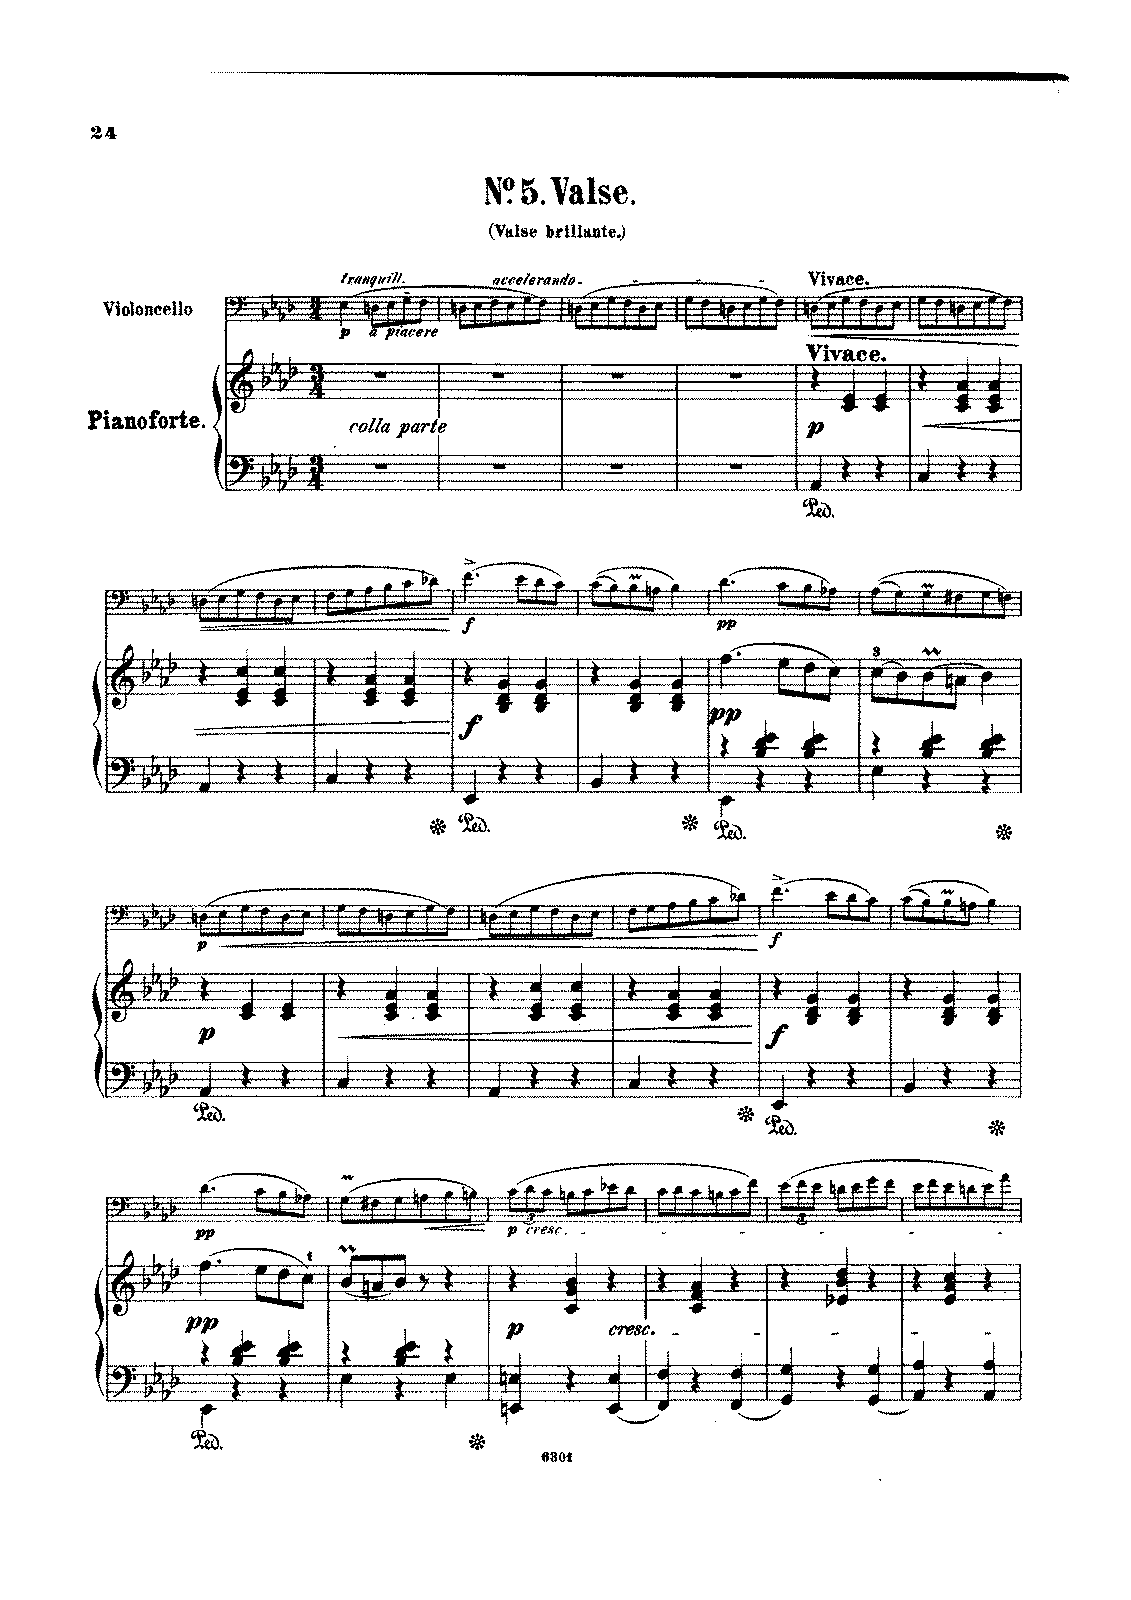 PMLP02373-Chopin - 5a Valse Brillante Op64 No1 for Cello and Piano (Grutzmacher) score.pdf